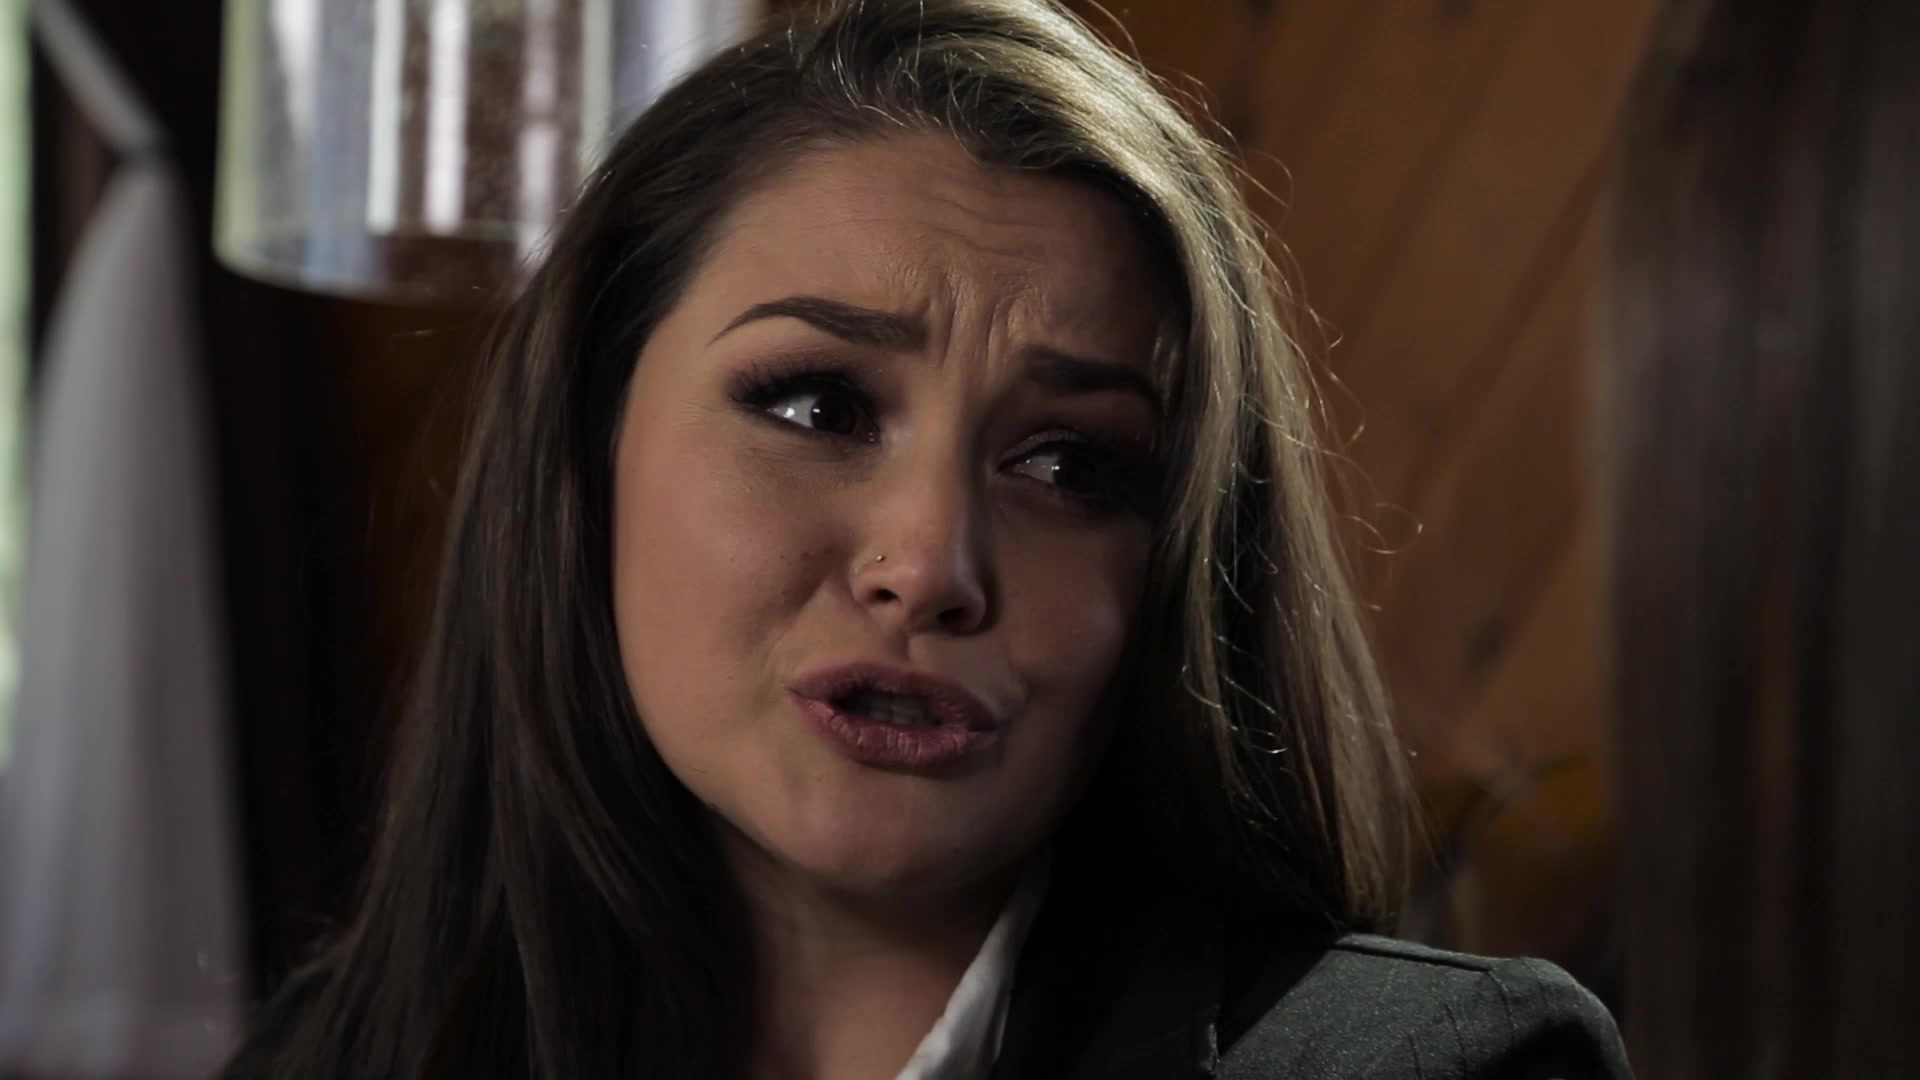 Scene with Allie Haze, Riley Reid and Karla Kush - image 3 out of 20